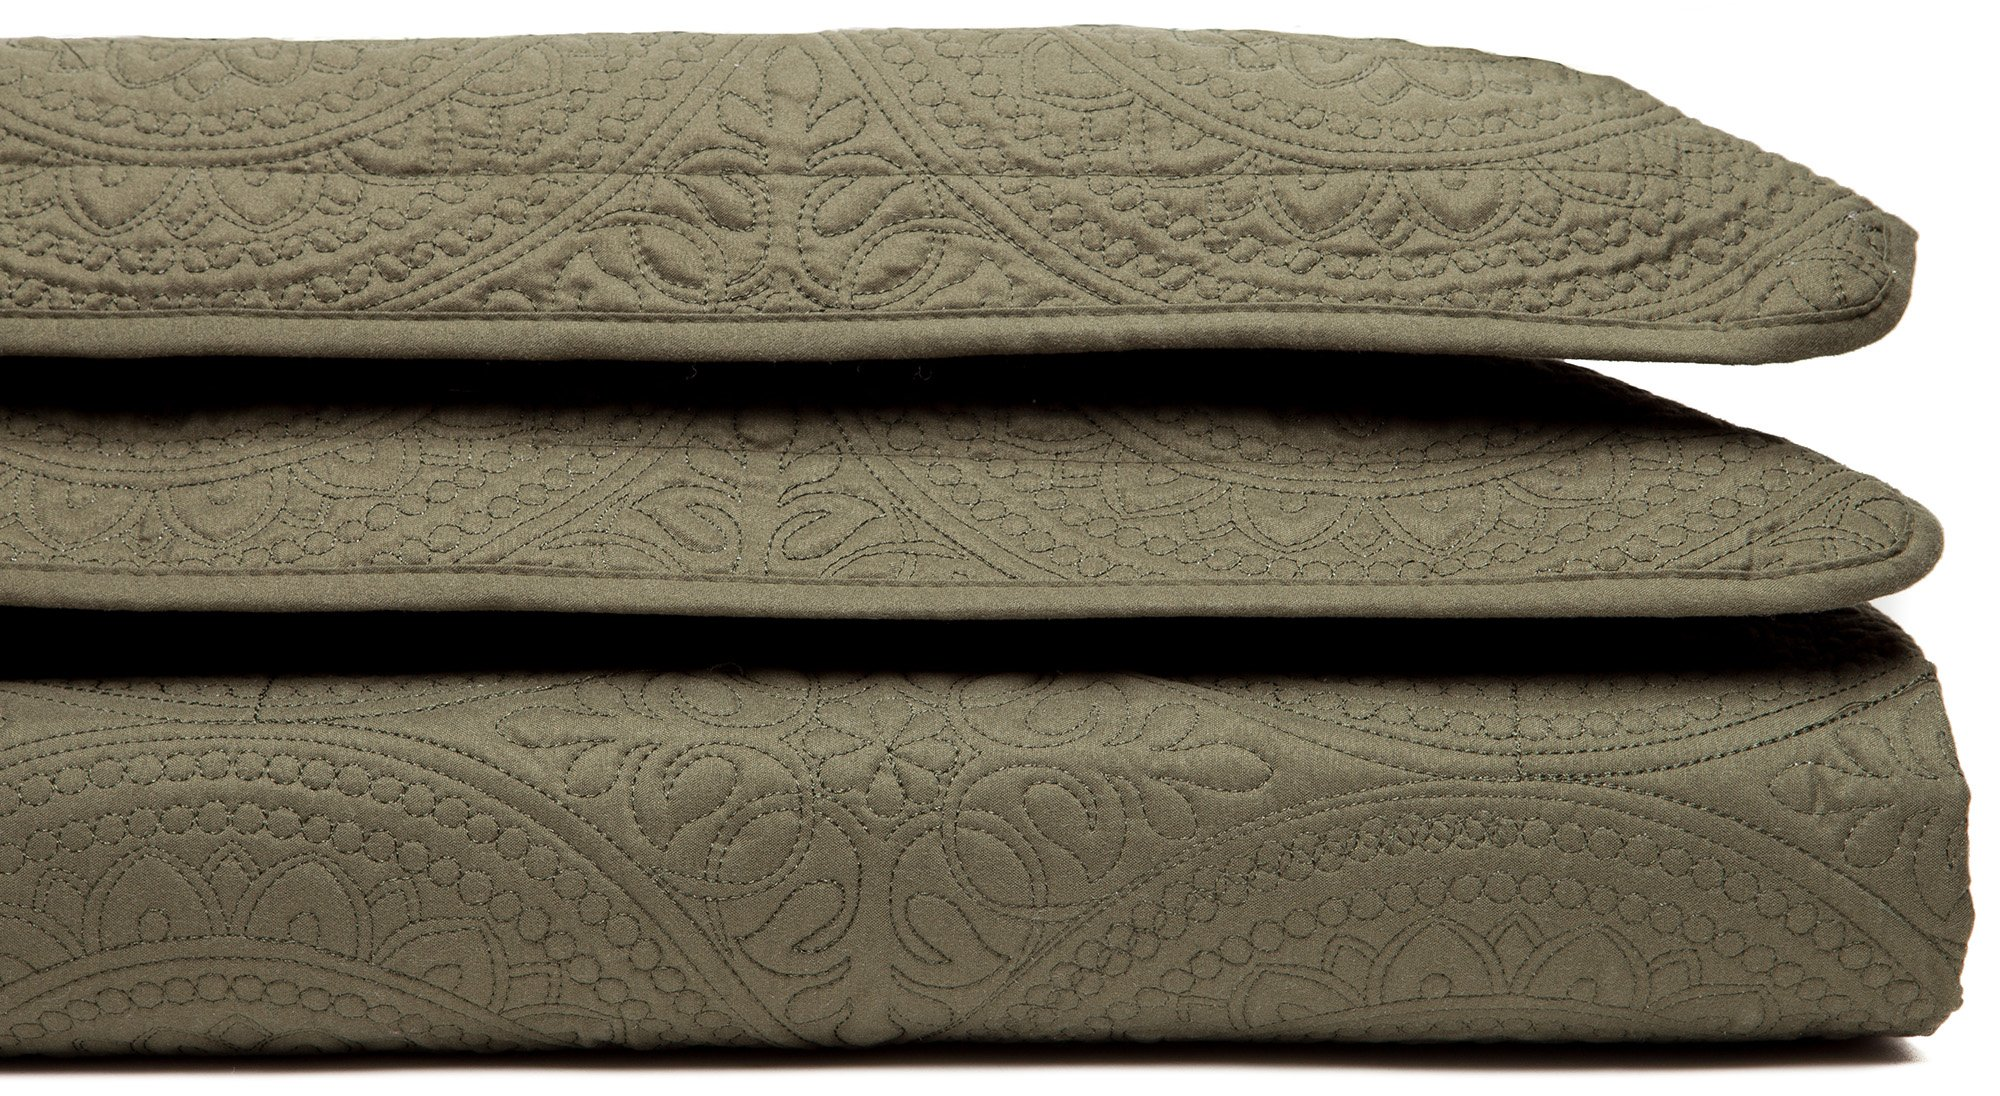 Chanasya Designer Detail Beautiful Thread Embriodary Classic Quilted Pattern 3-Piece Bedspread Coverlet Set- KING- Olive